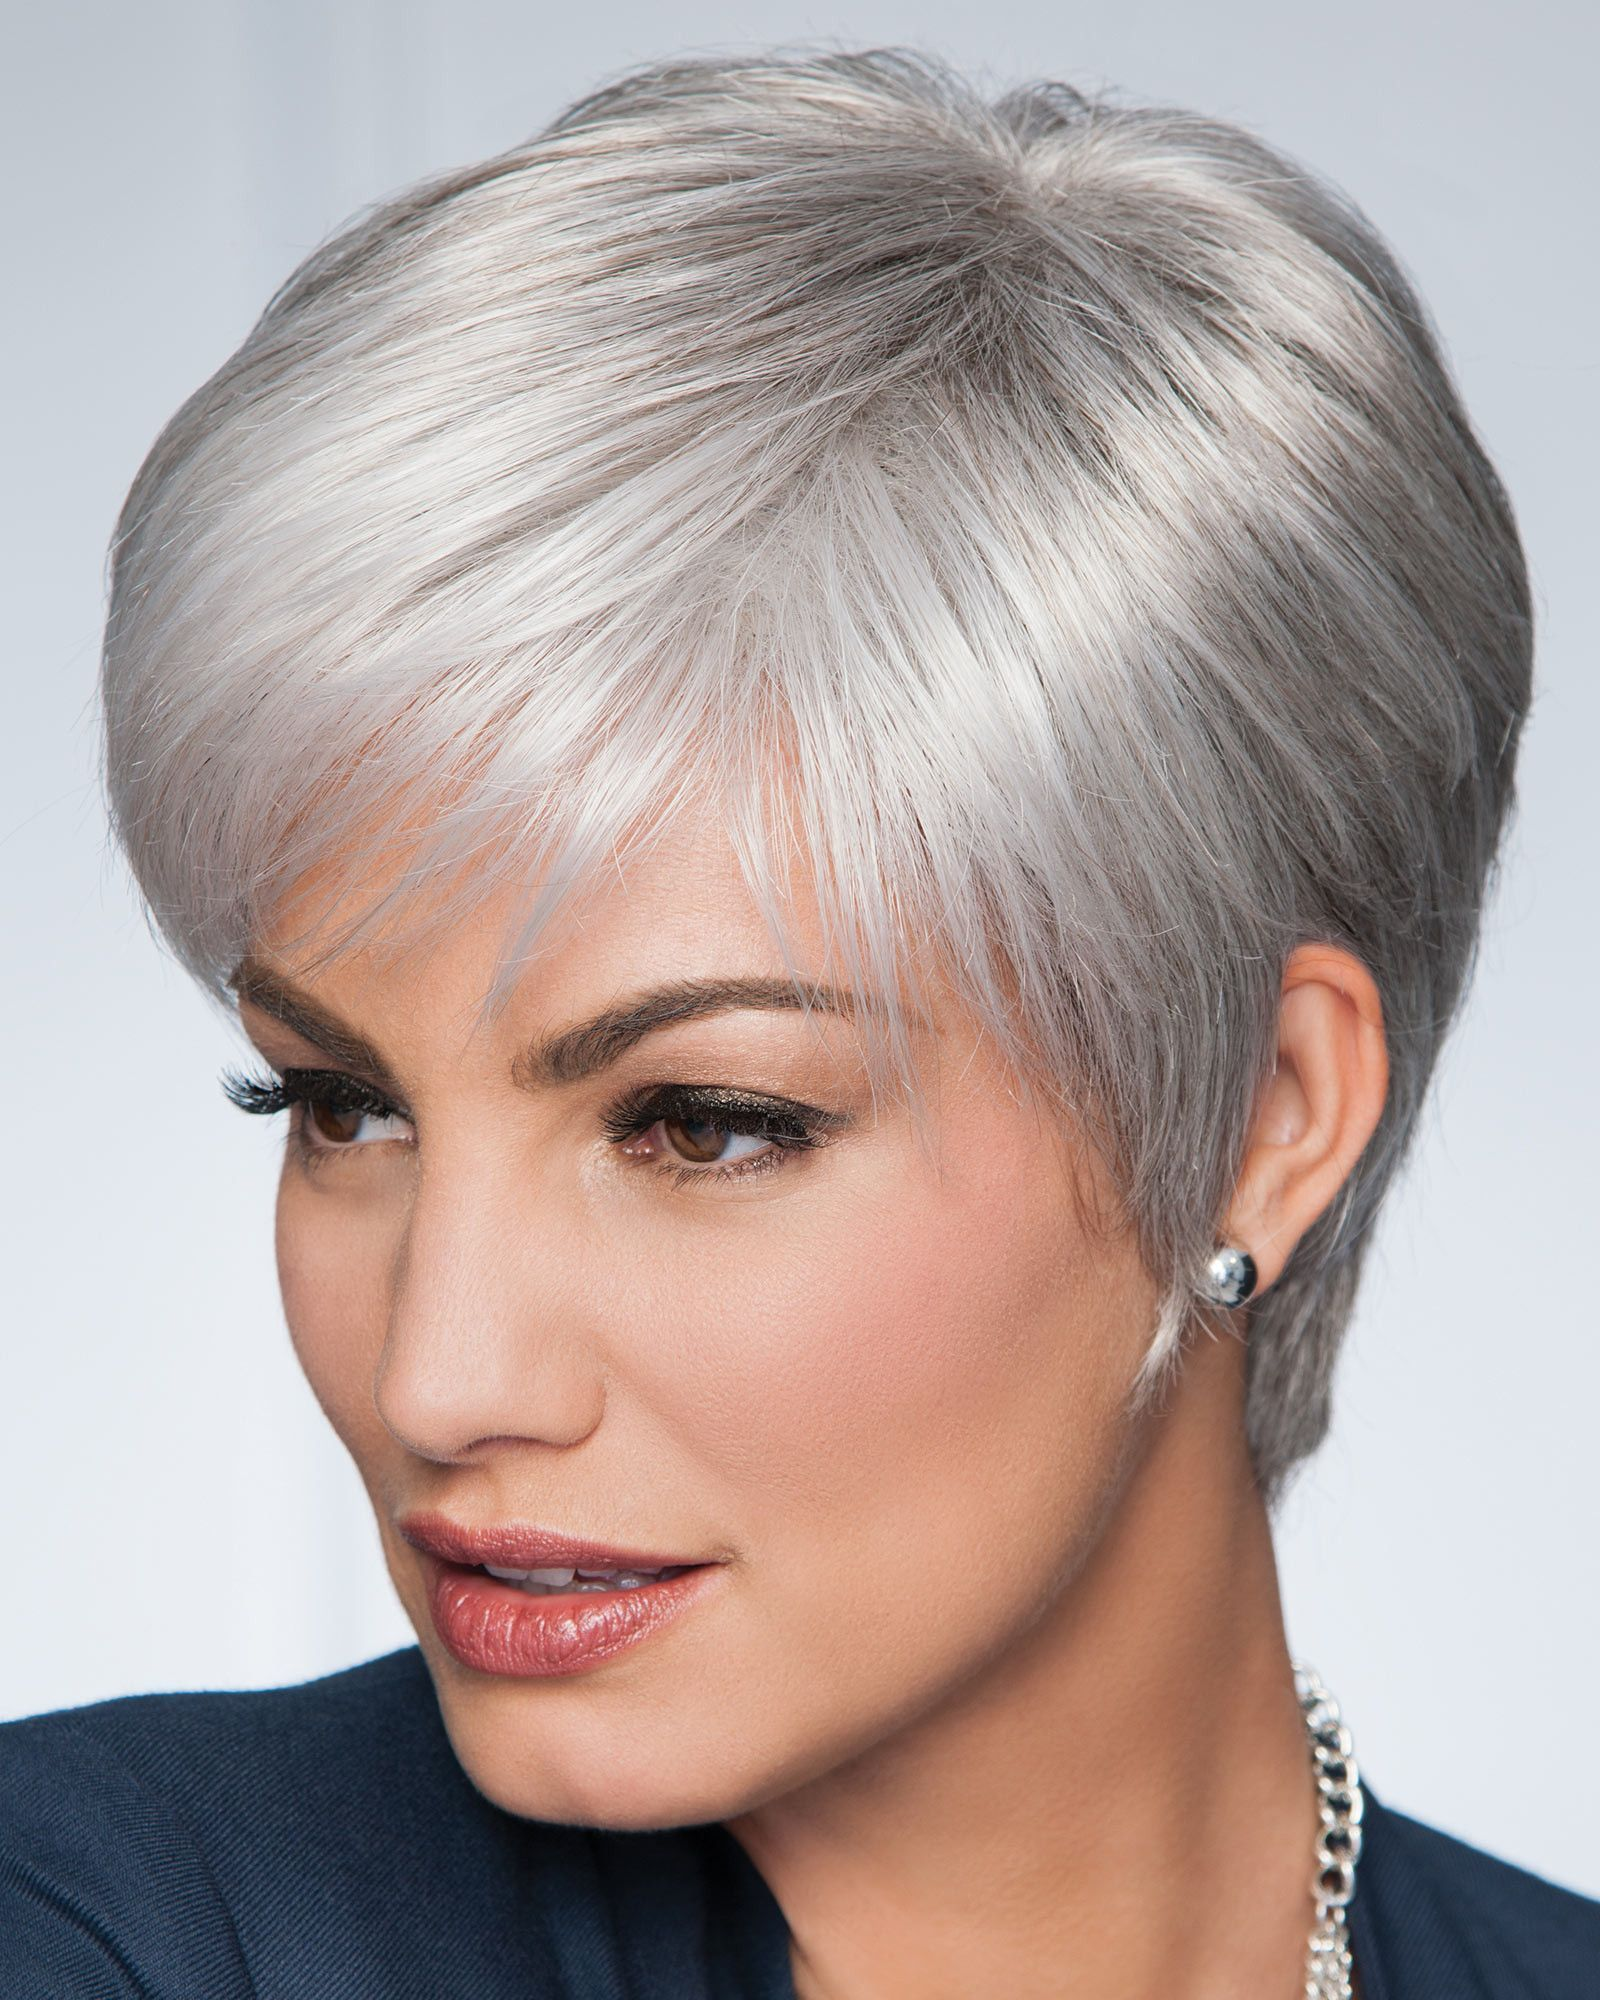 Lace Lace Gray Wigs Hair Blonde To Hide GreyDark Grey Hair Male